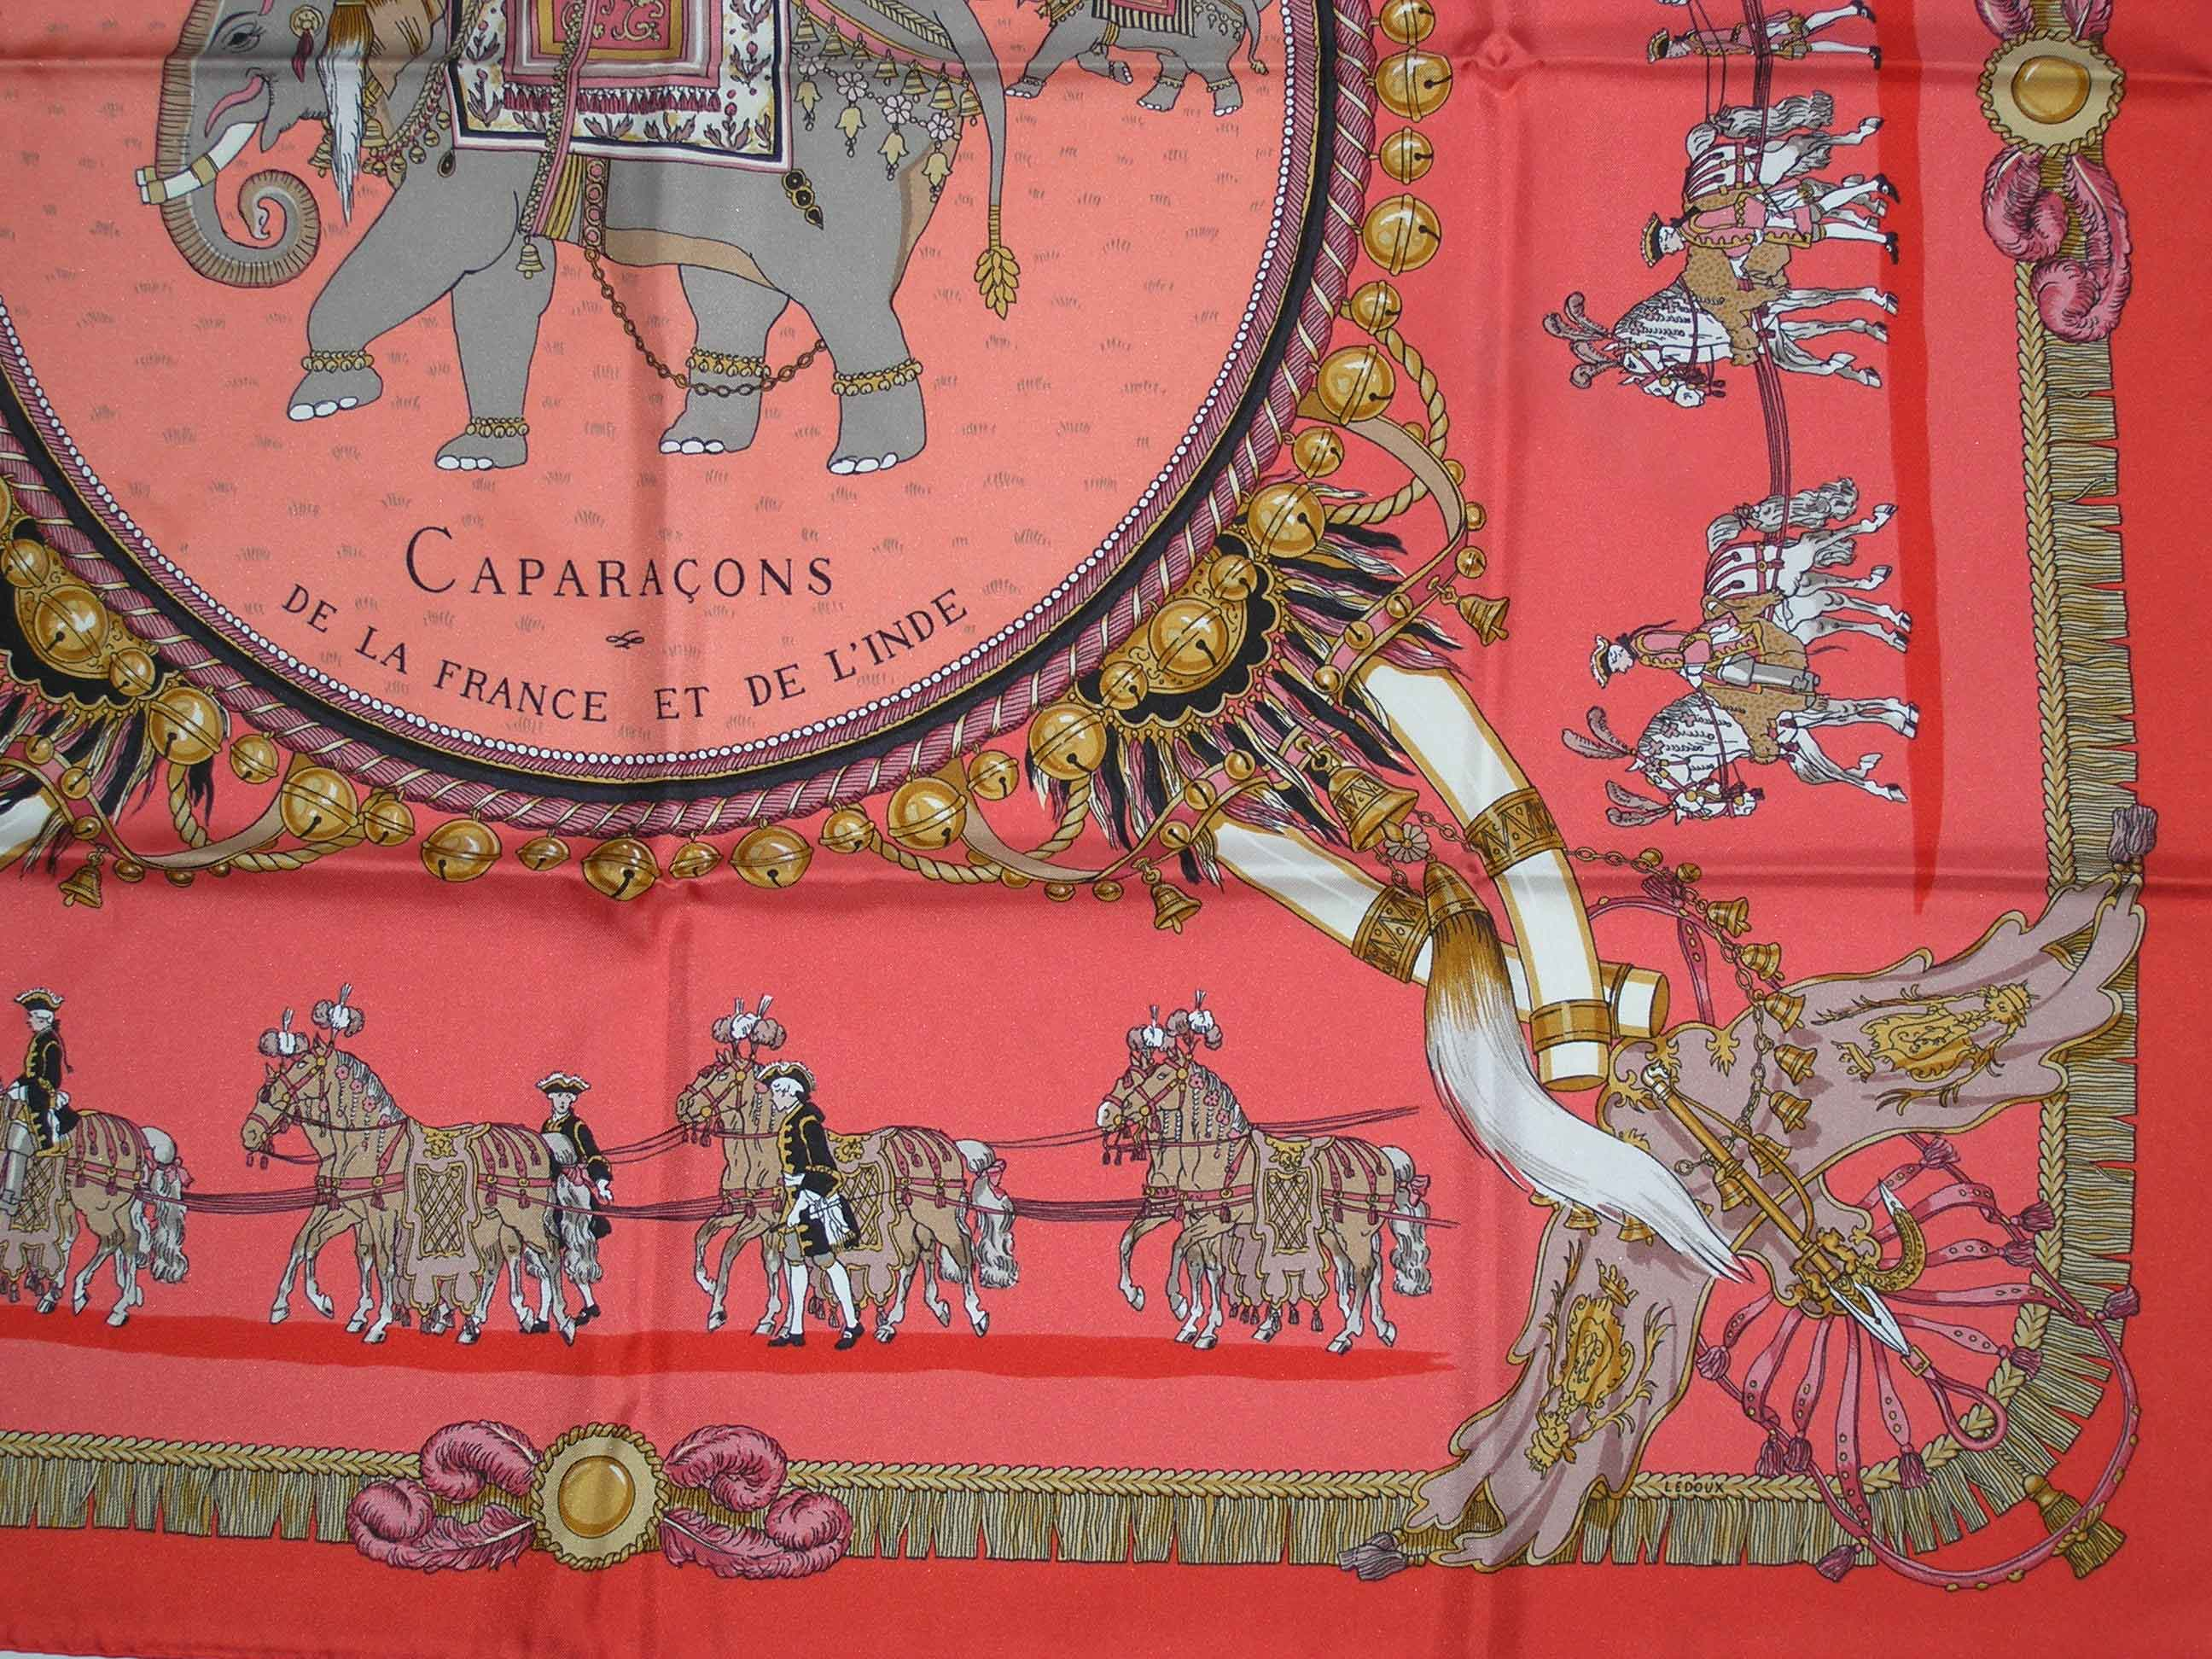 Caparacons de la France et de L Inde Hermes Scarf - It s All Goode 68c1841d413